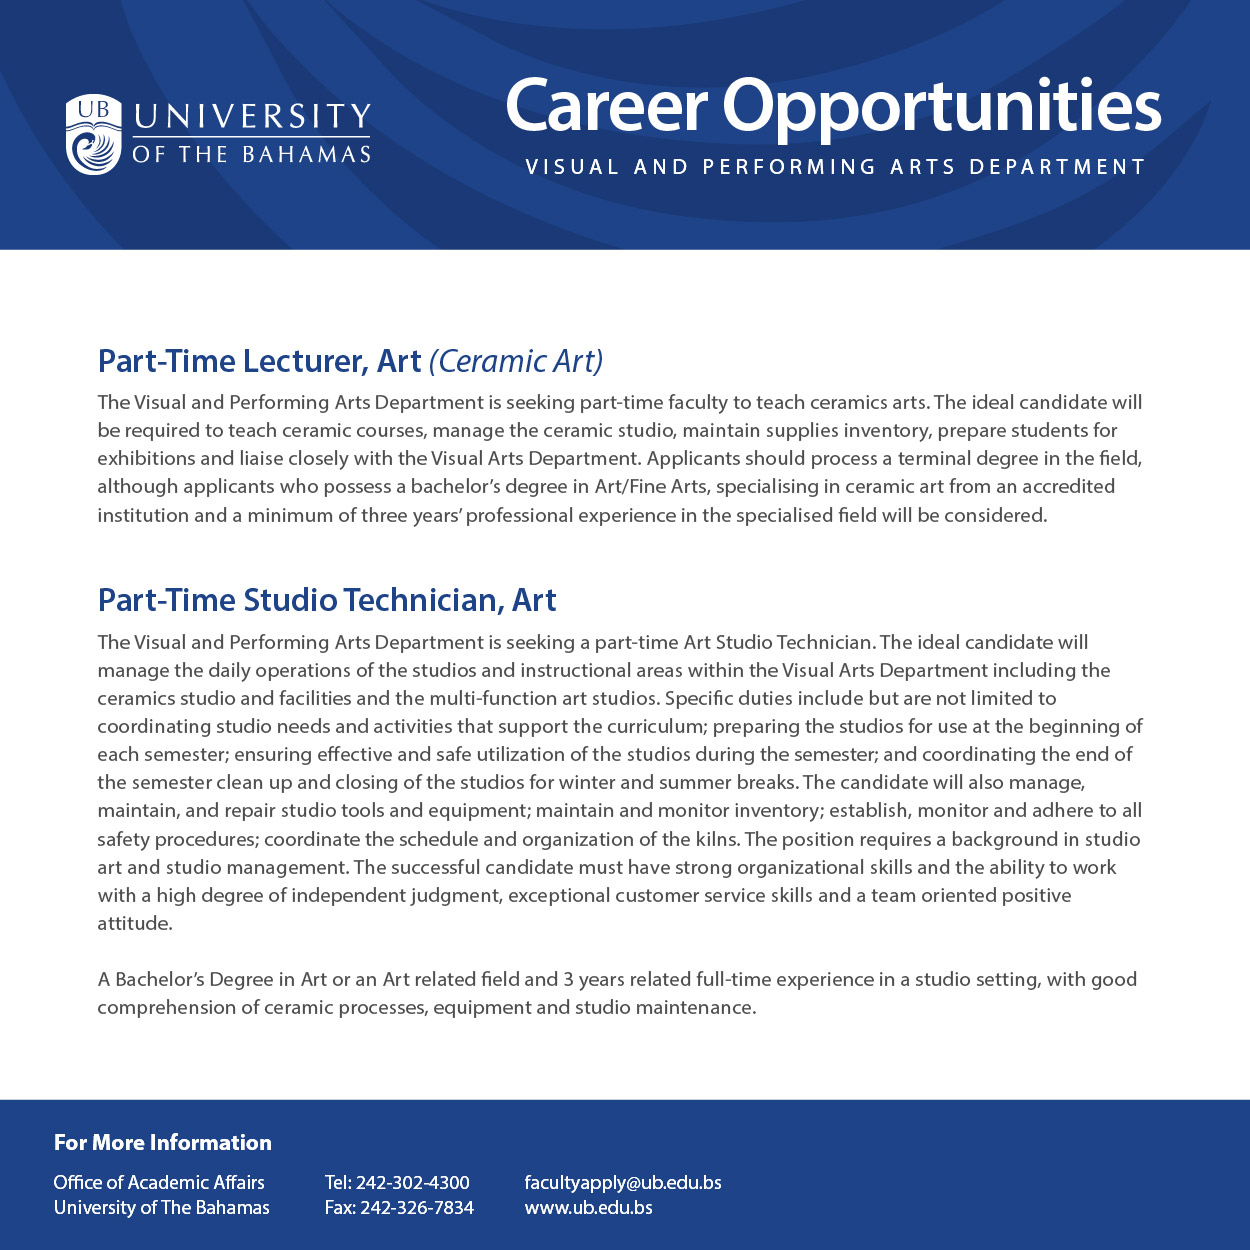 ub visual arts department employment opportunities national ub visual arts department employment opportunities